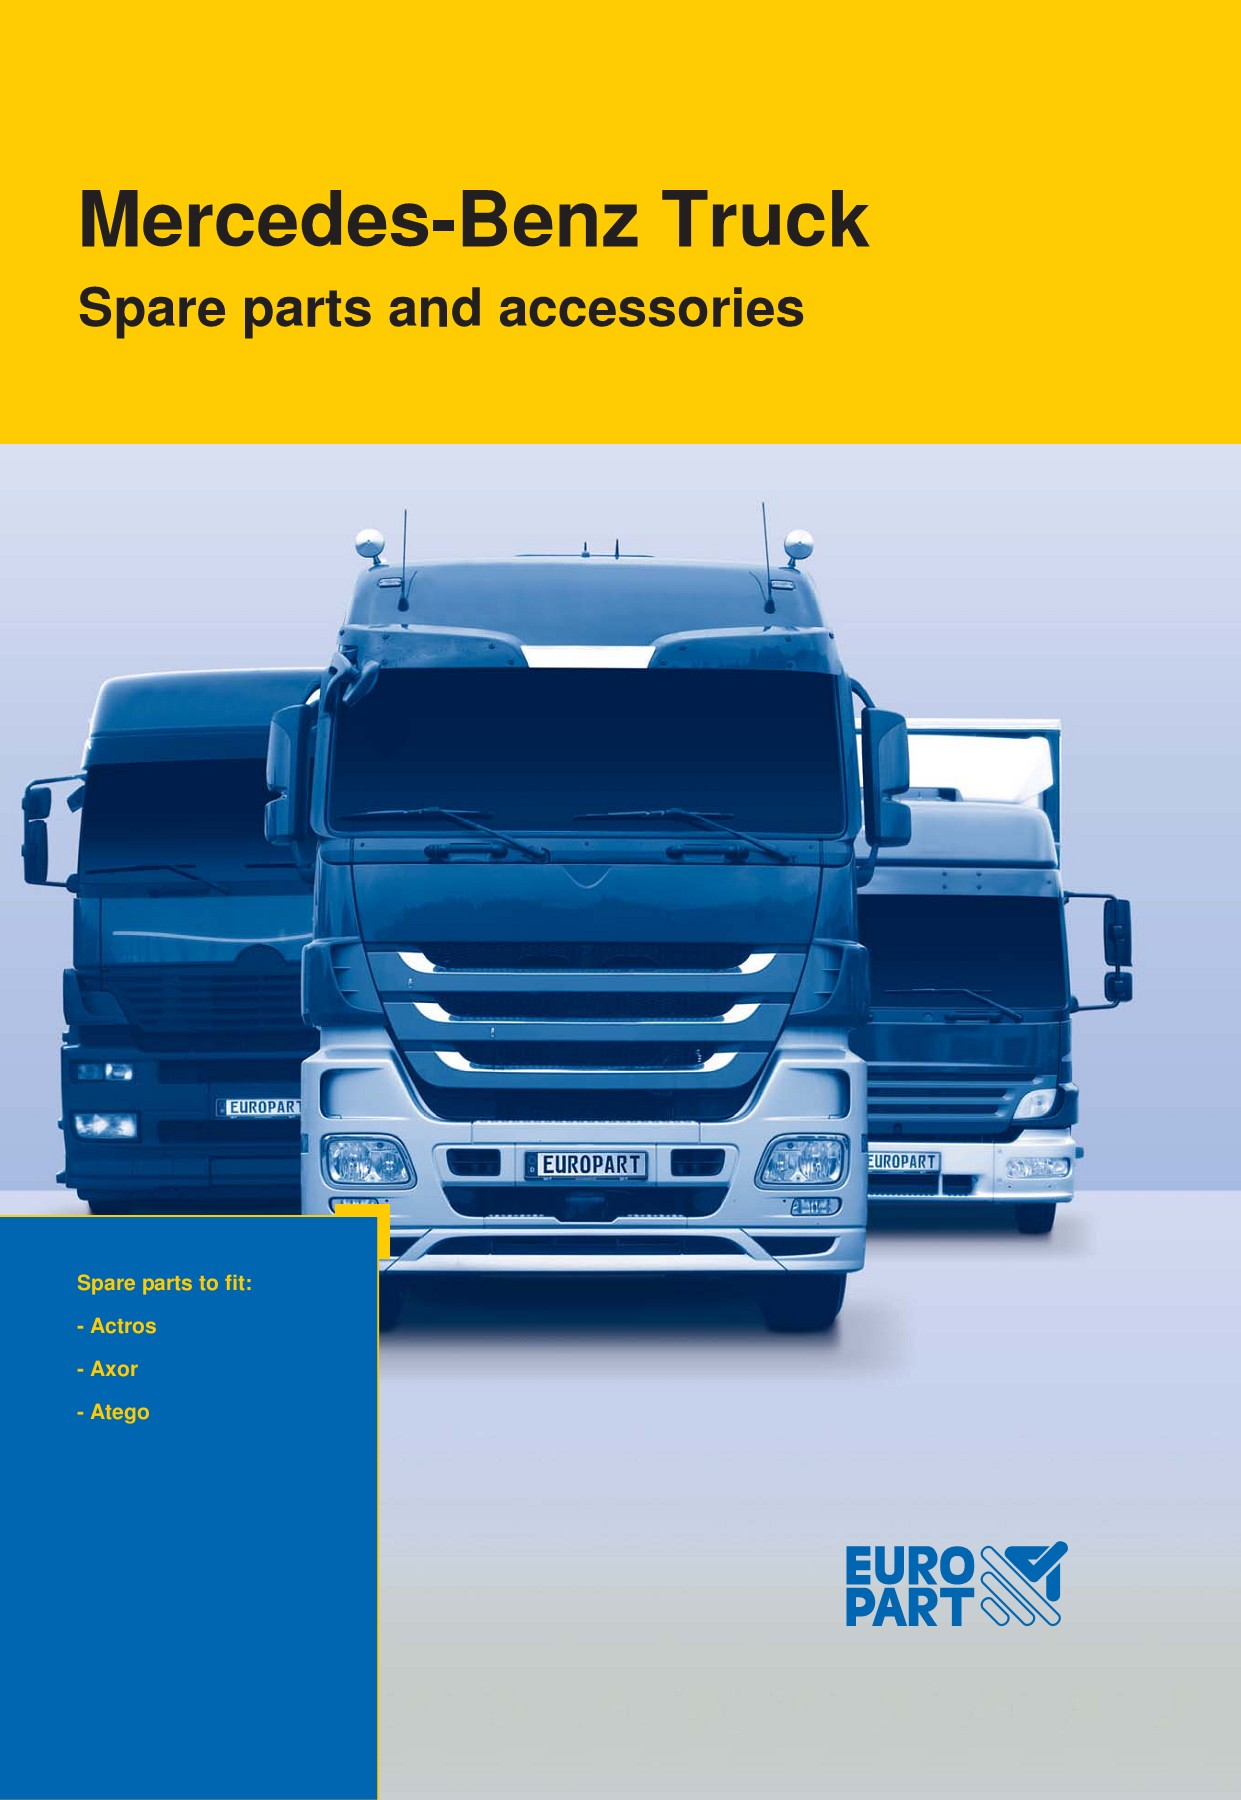 EP MB Truck Pages 351 - 400 - Text Version | AnyFlip